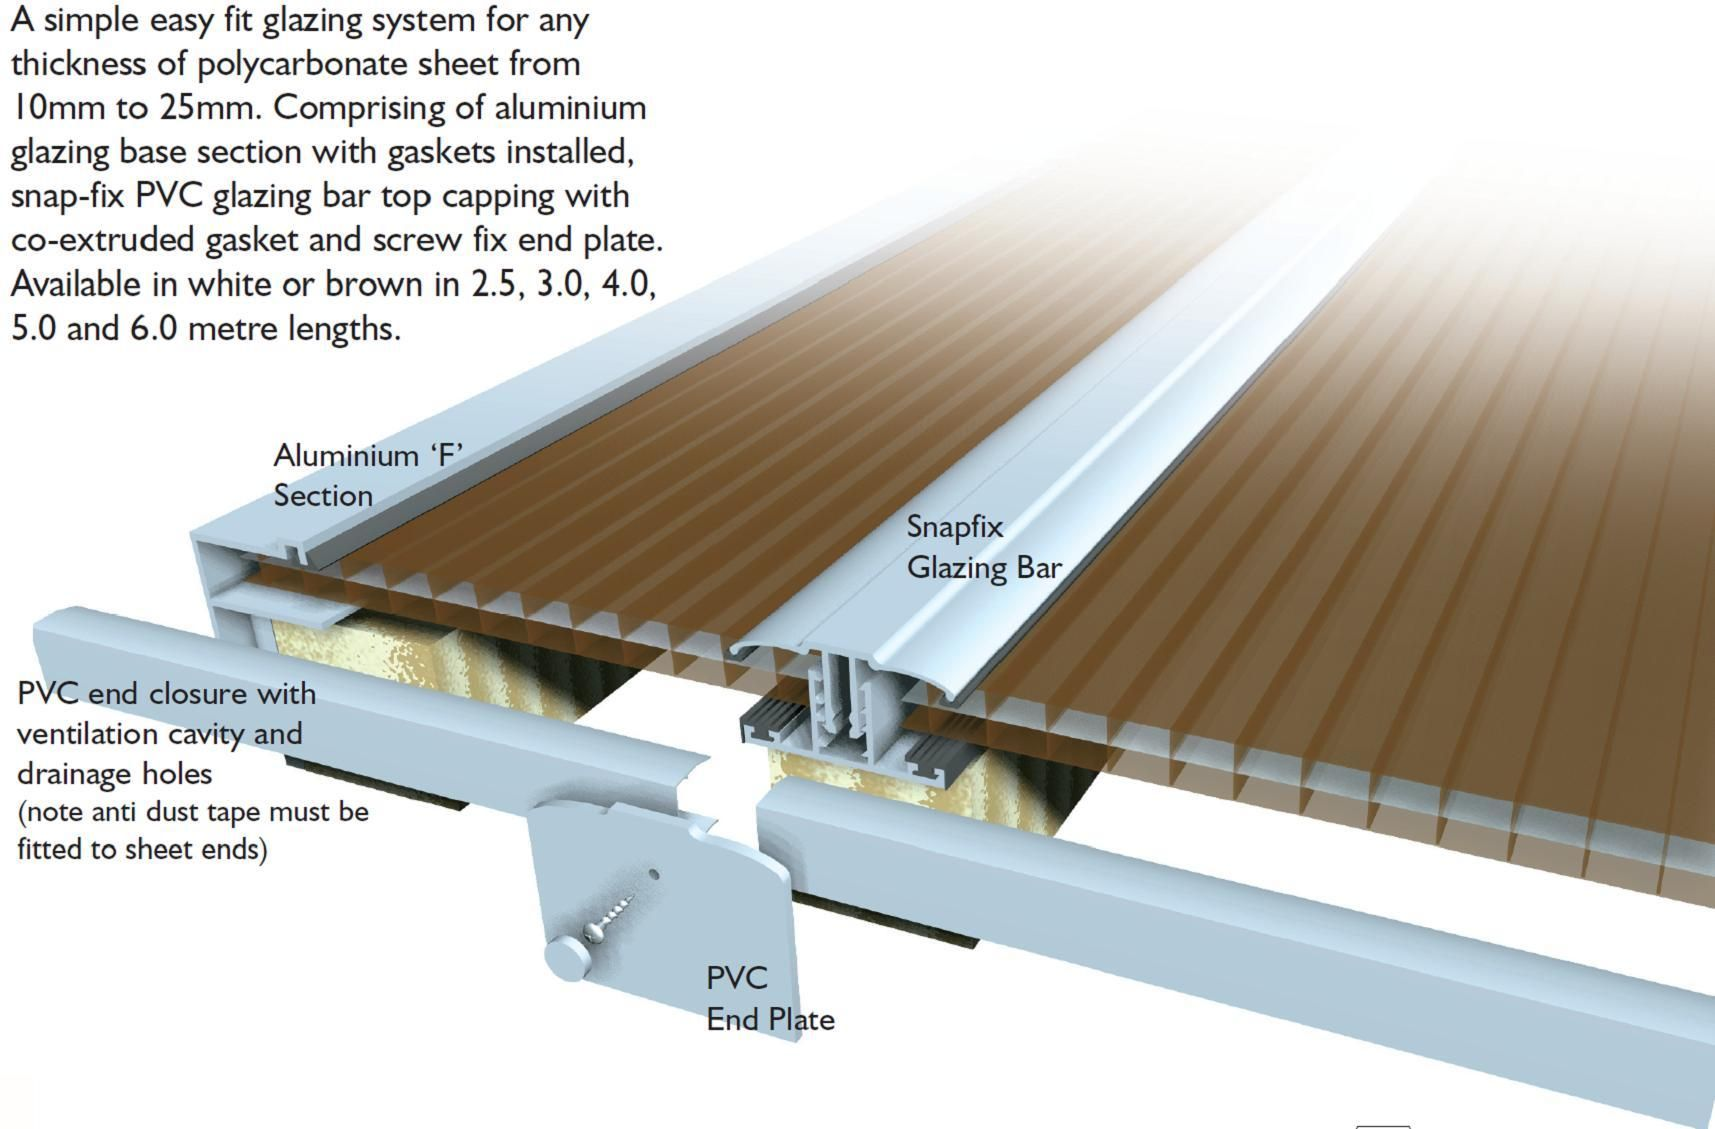 Go To Rafter Supported Glazing System Polycarbonate Outdoor Wood Timber